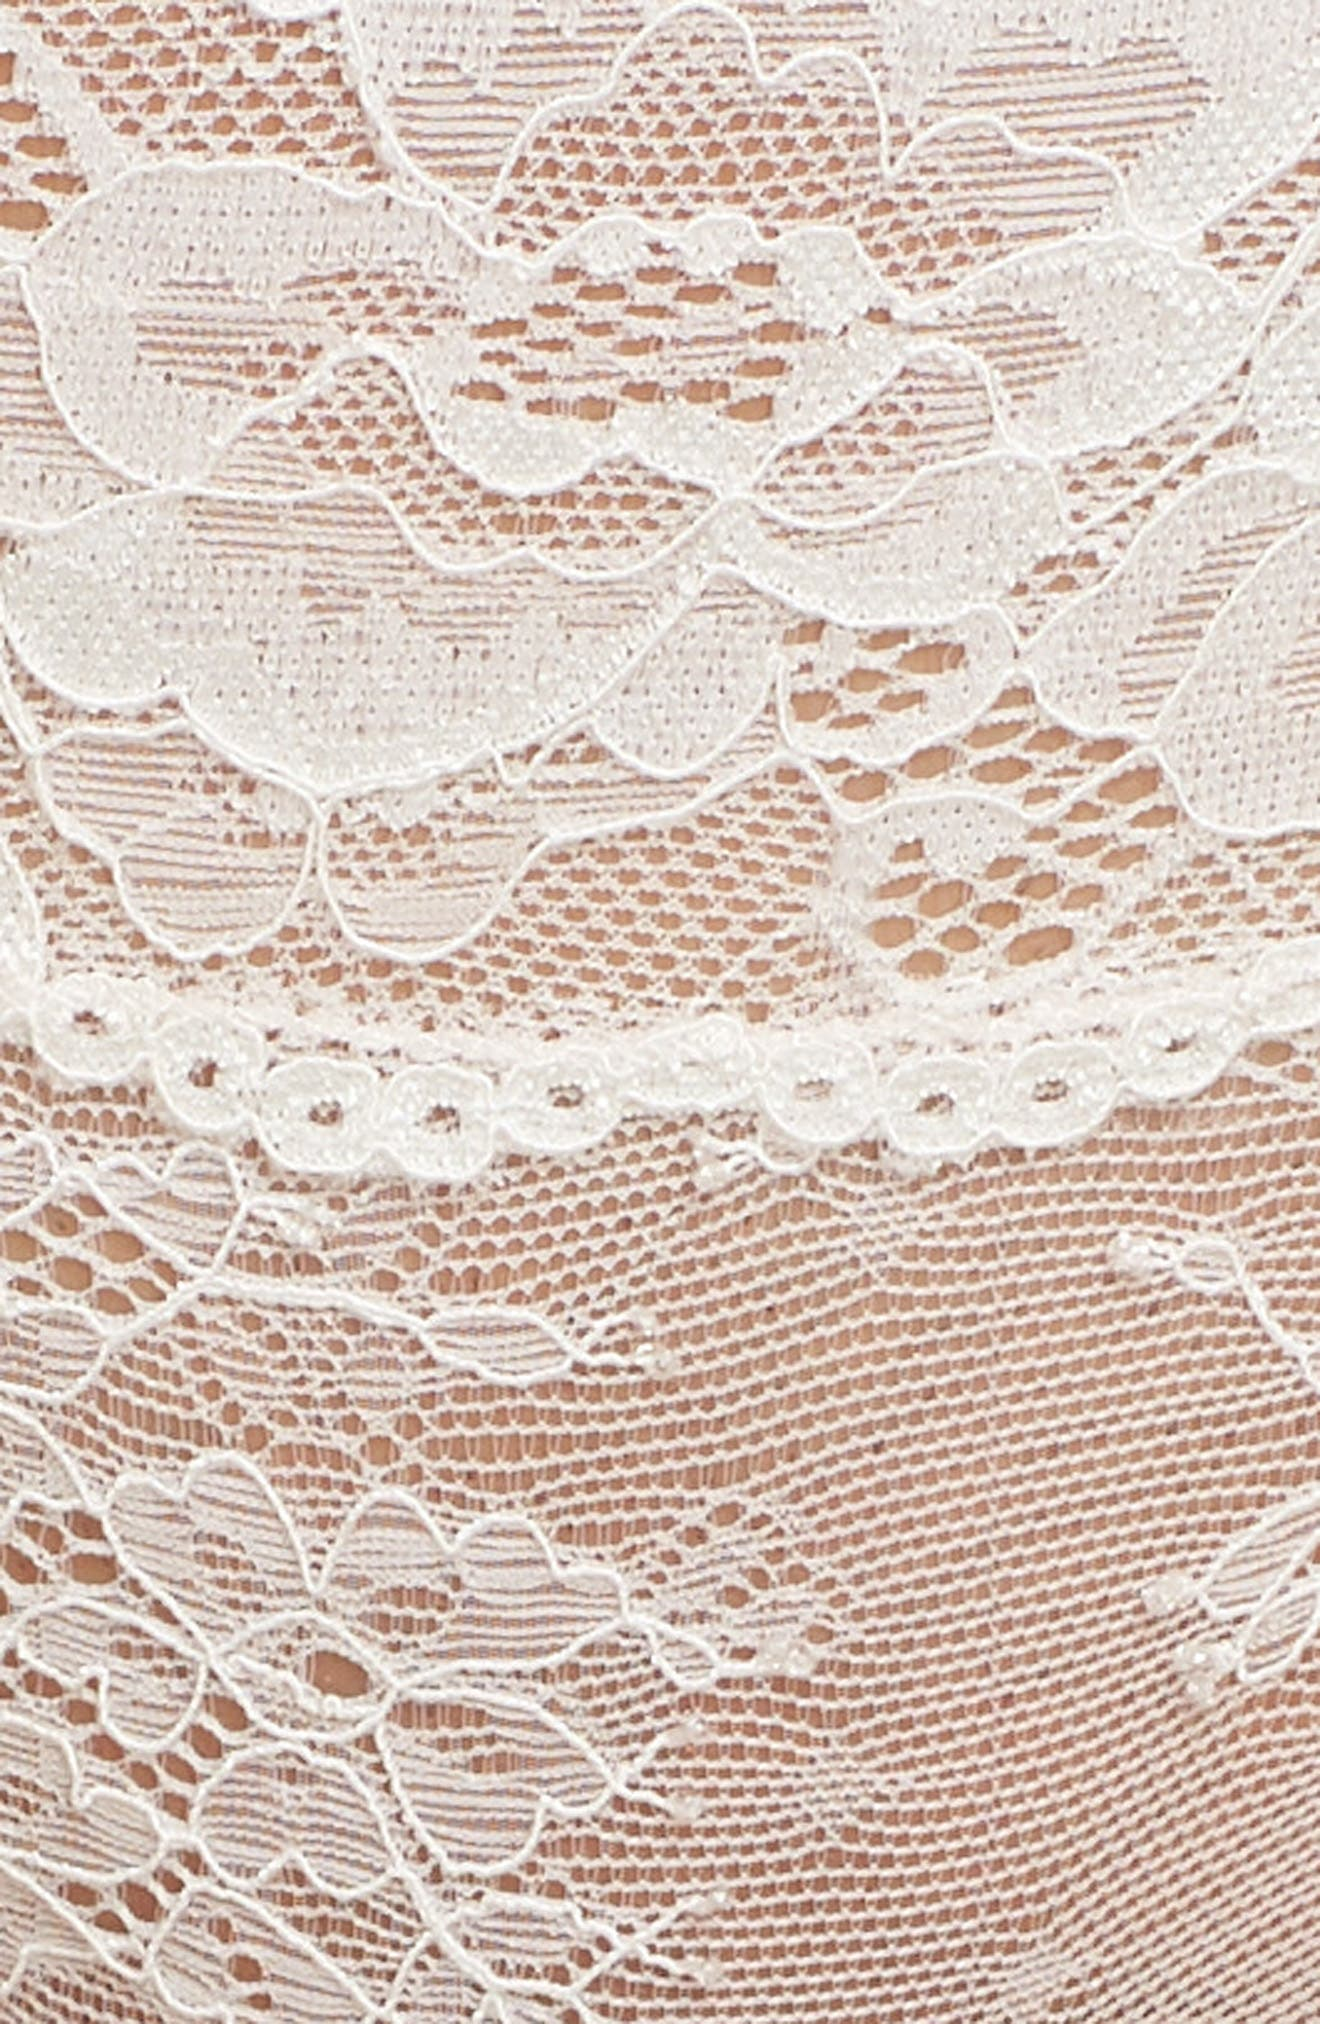 Honeydew Lace Thong,                             Alternate thumbnail 73, color,